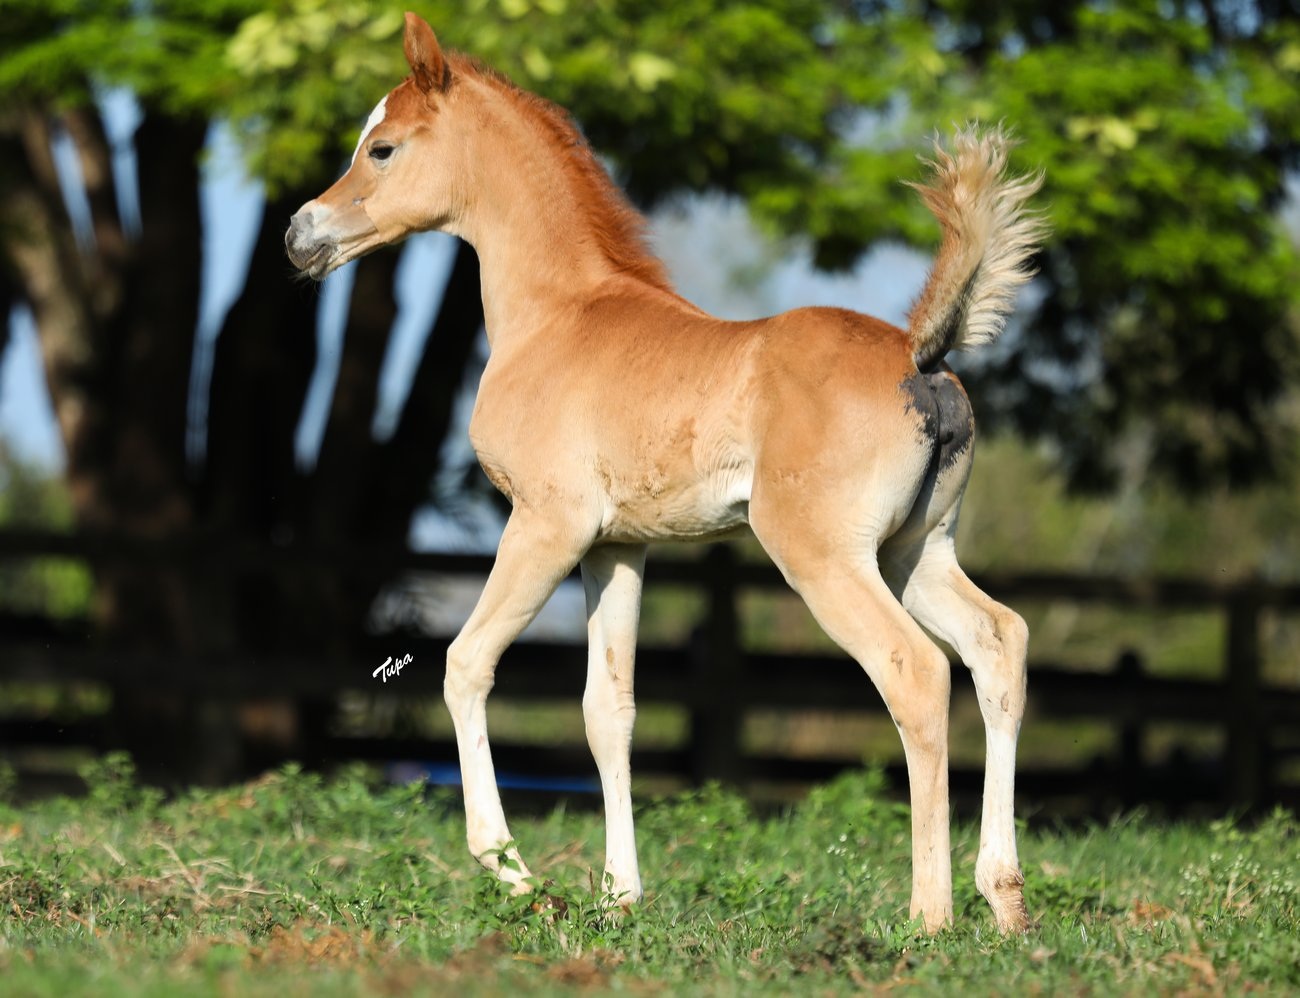 The filly by El Jahez WH – NN Sultana, by Tupa